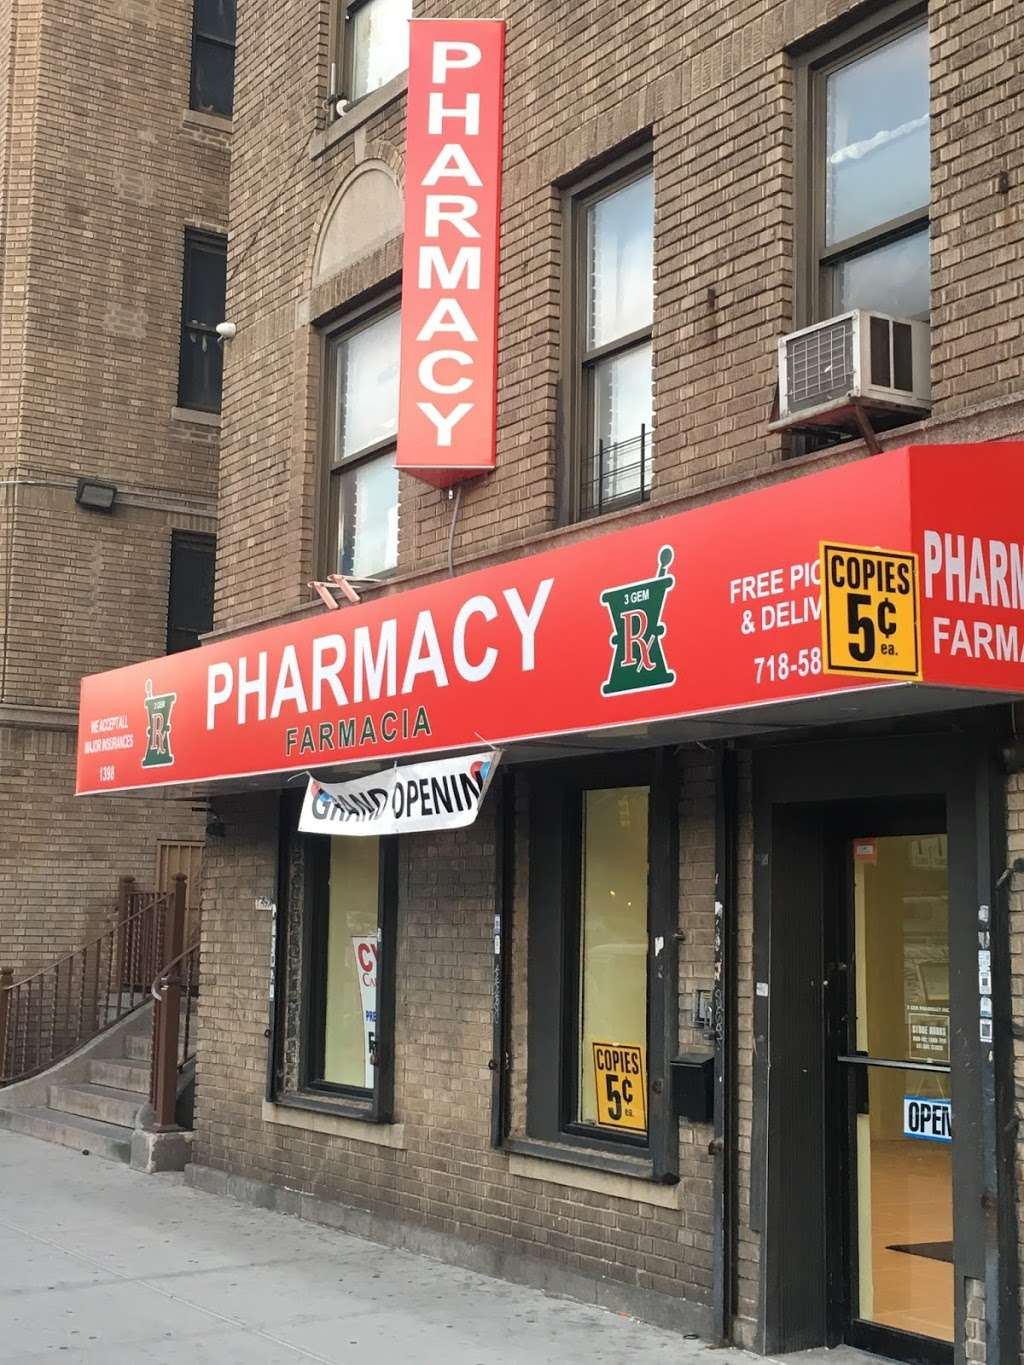 3 Gem Pharmacy - pharmacy  | Photo 4 of 4 | Address: 1398 Grand Concourse, Bronx, NY 10456, USA | Phone: (718) 588-3333